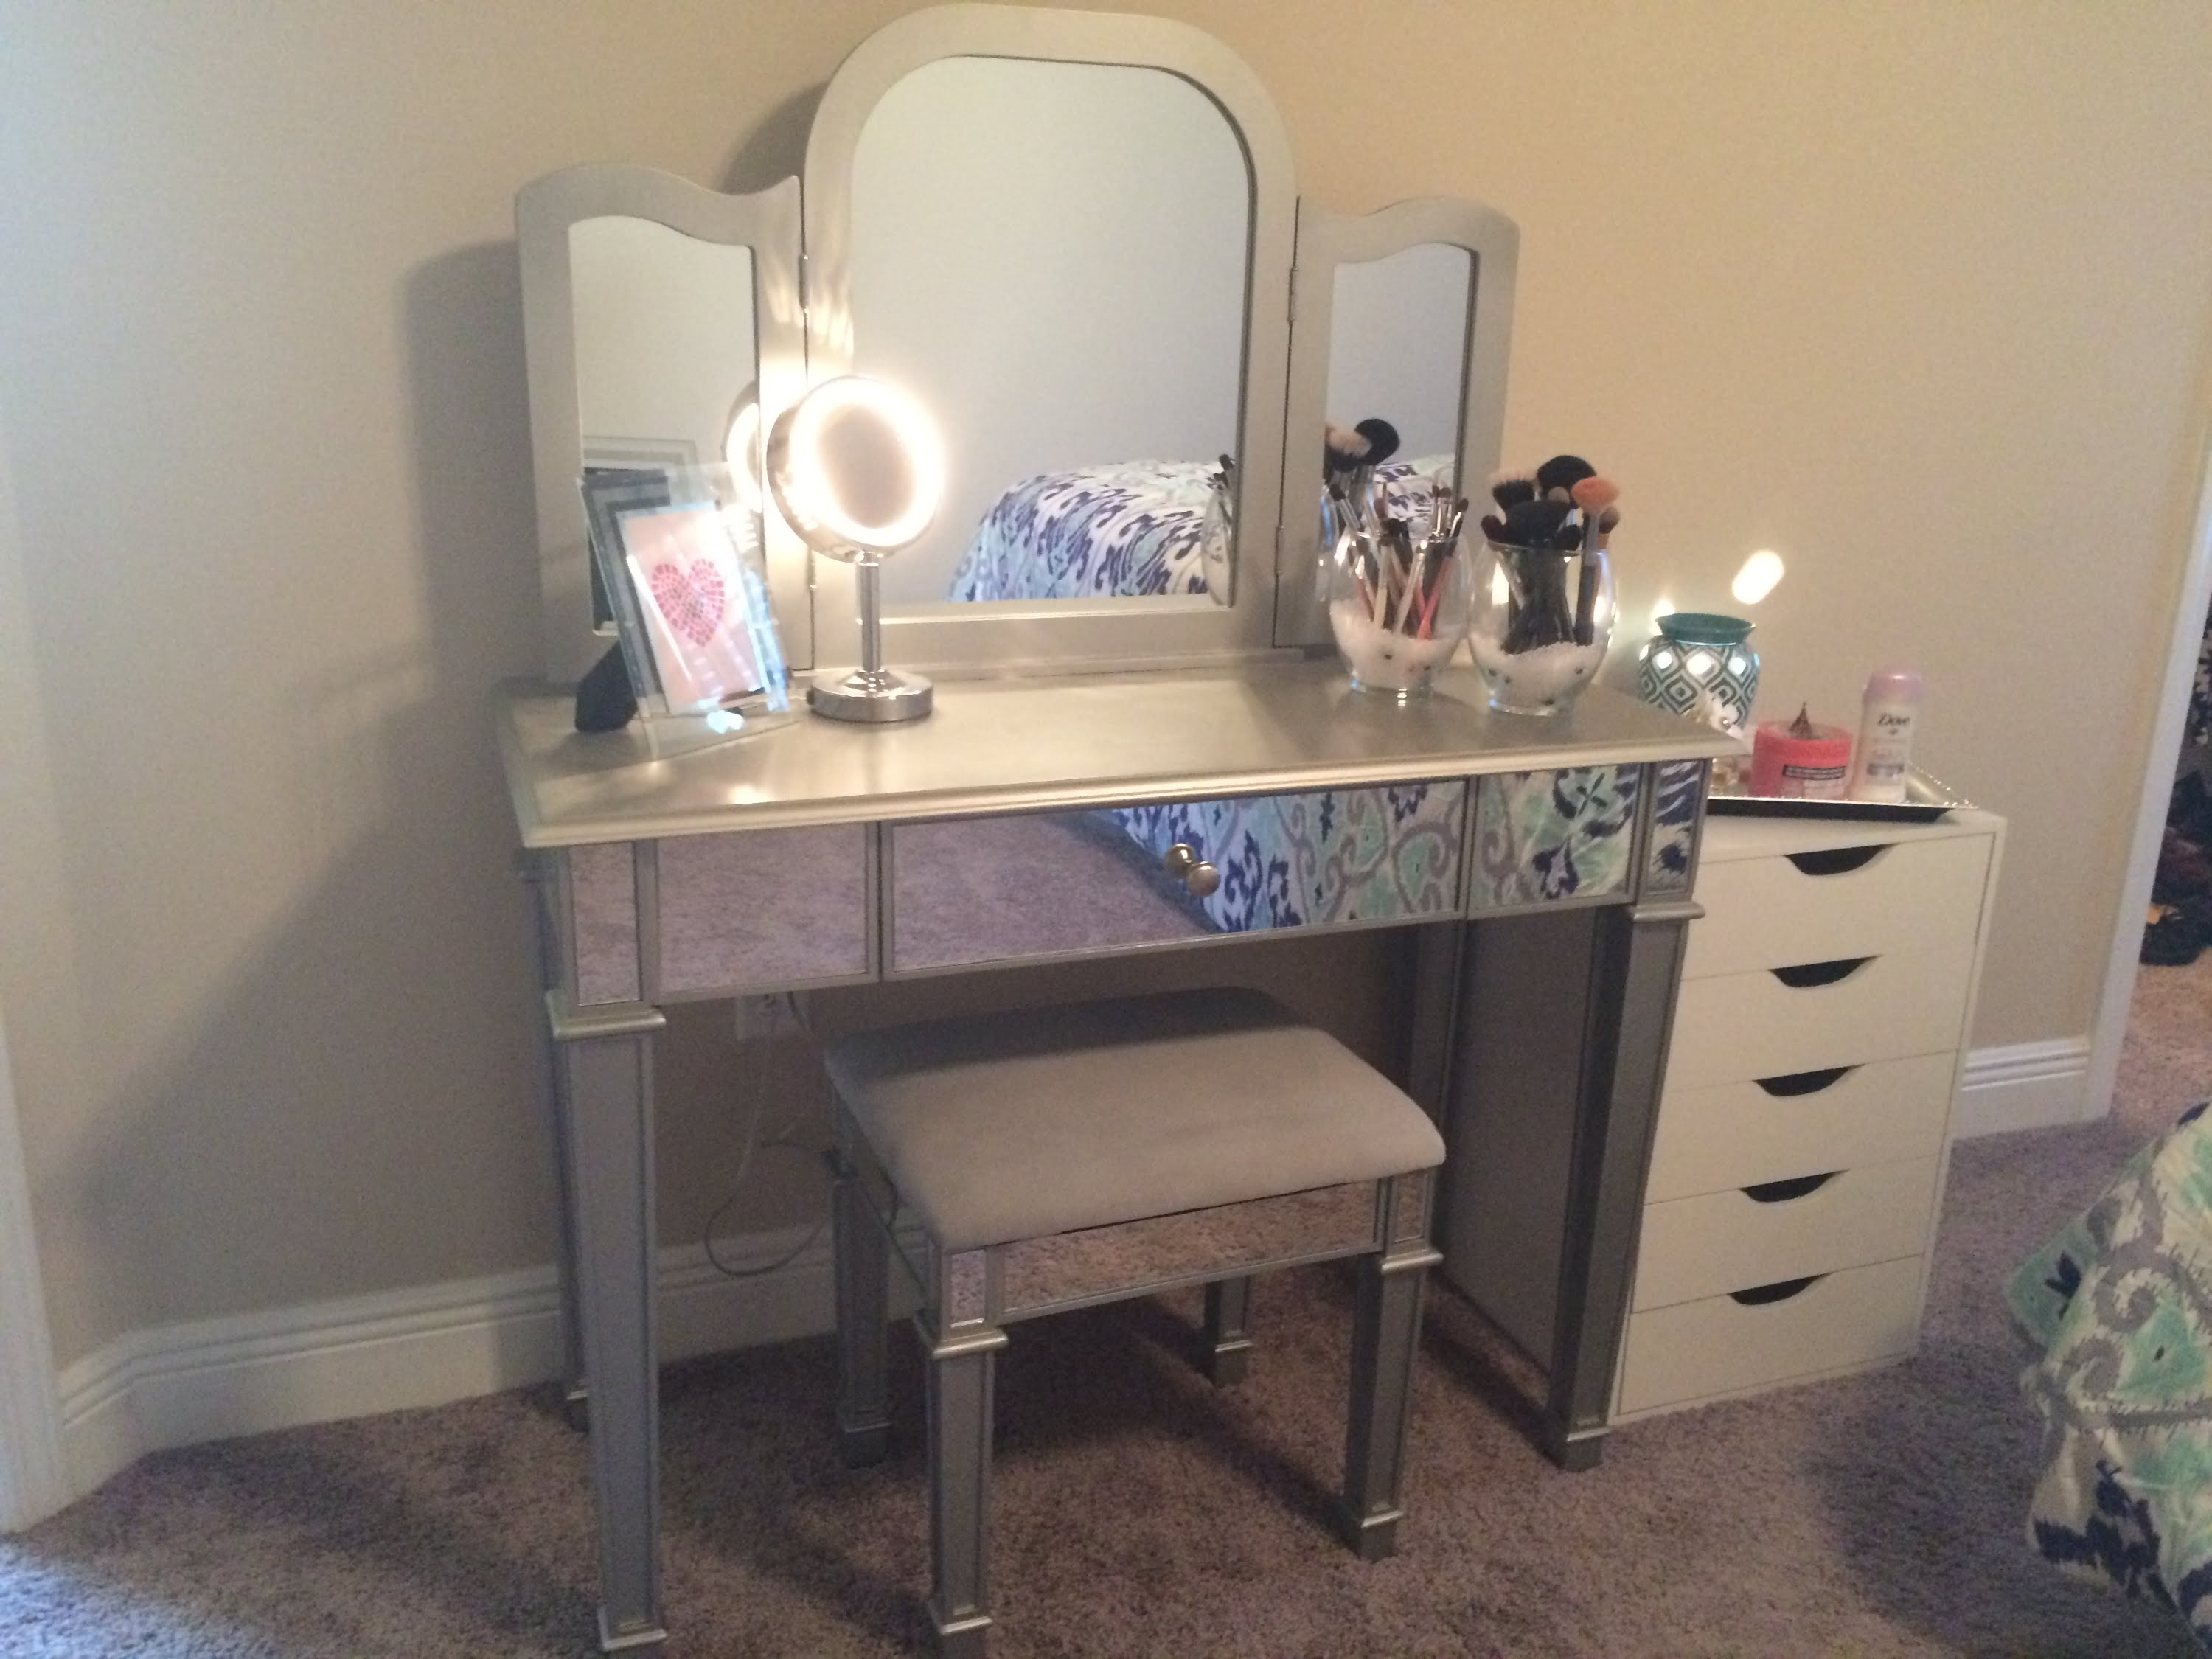 Admirable hayworth vanity mirrored vanity and ikea vanity also ikea rug hayworth rug ideas